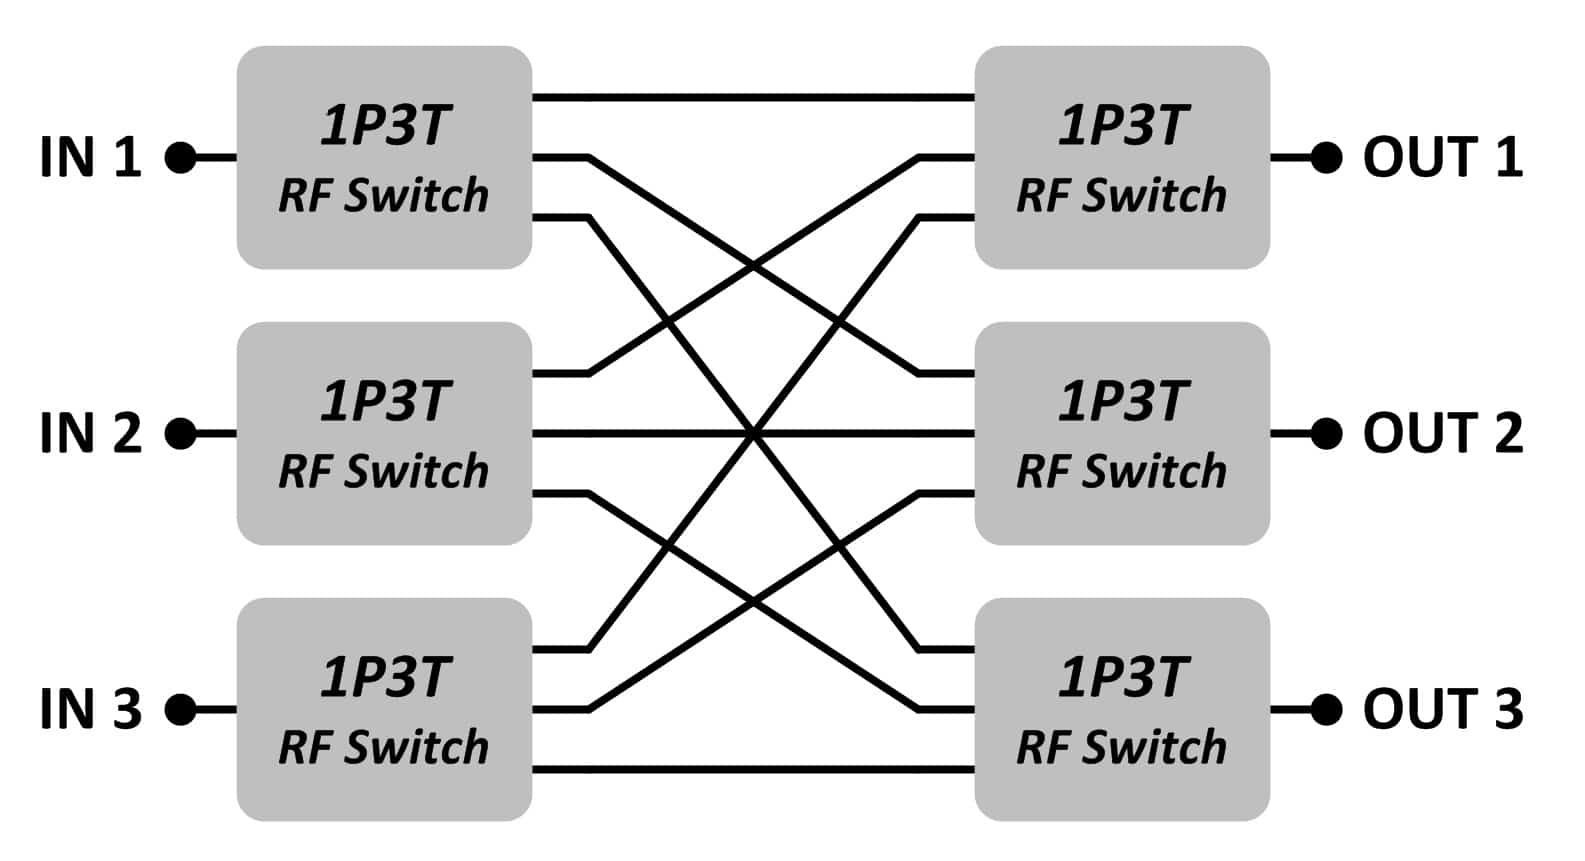 Matrix Switches Jfw Industries Rf Switch Attenuator Block Diagram 2 This Shows One Possible Setting Of A 3 X Blocking There Are Three Input Signals Blue Red Green